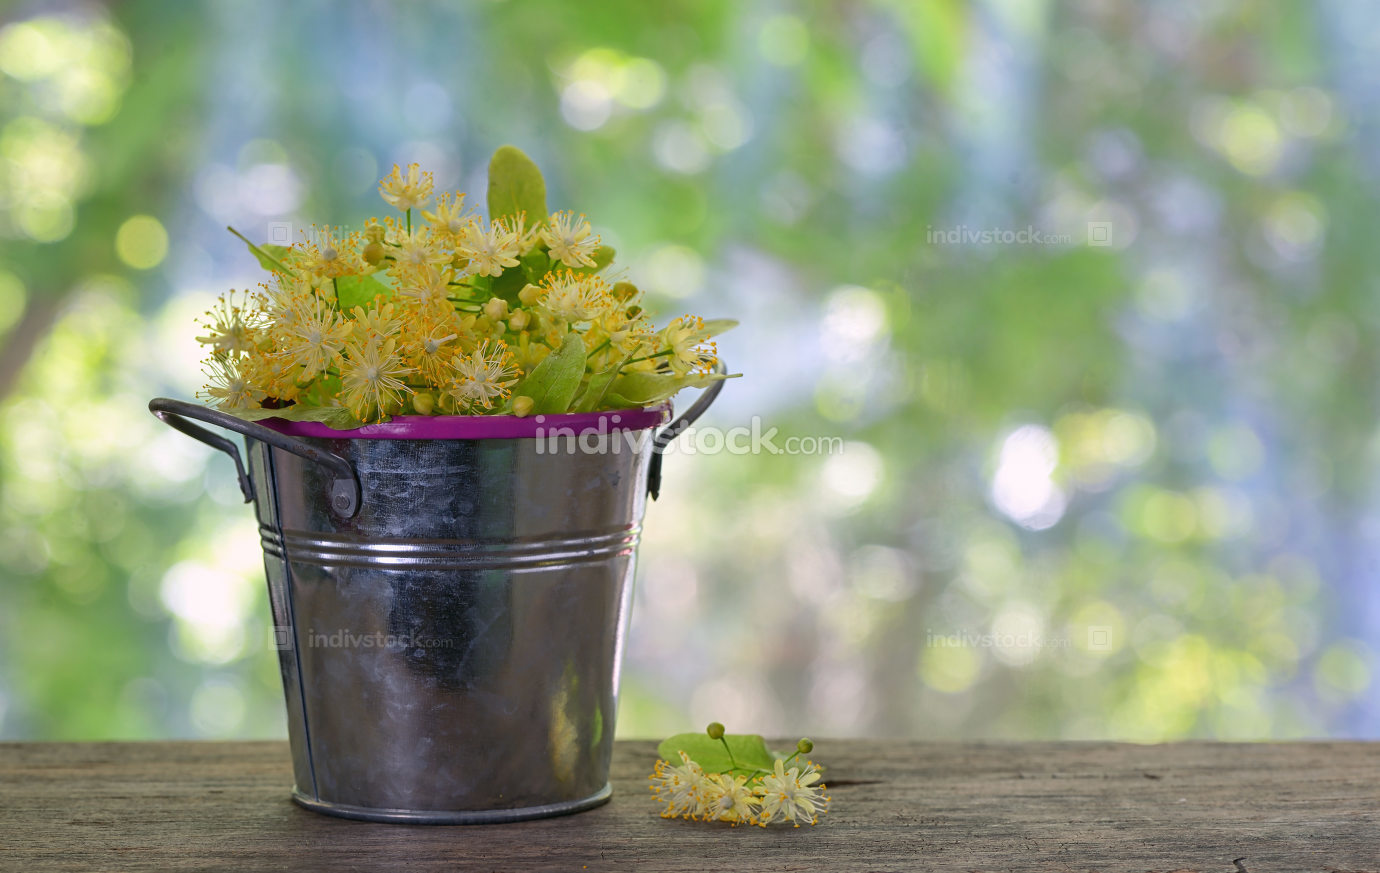 Flowers of linden tree in bucket